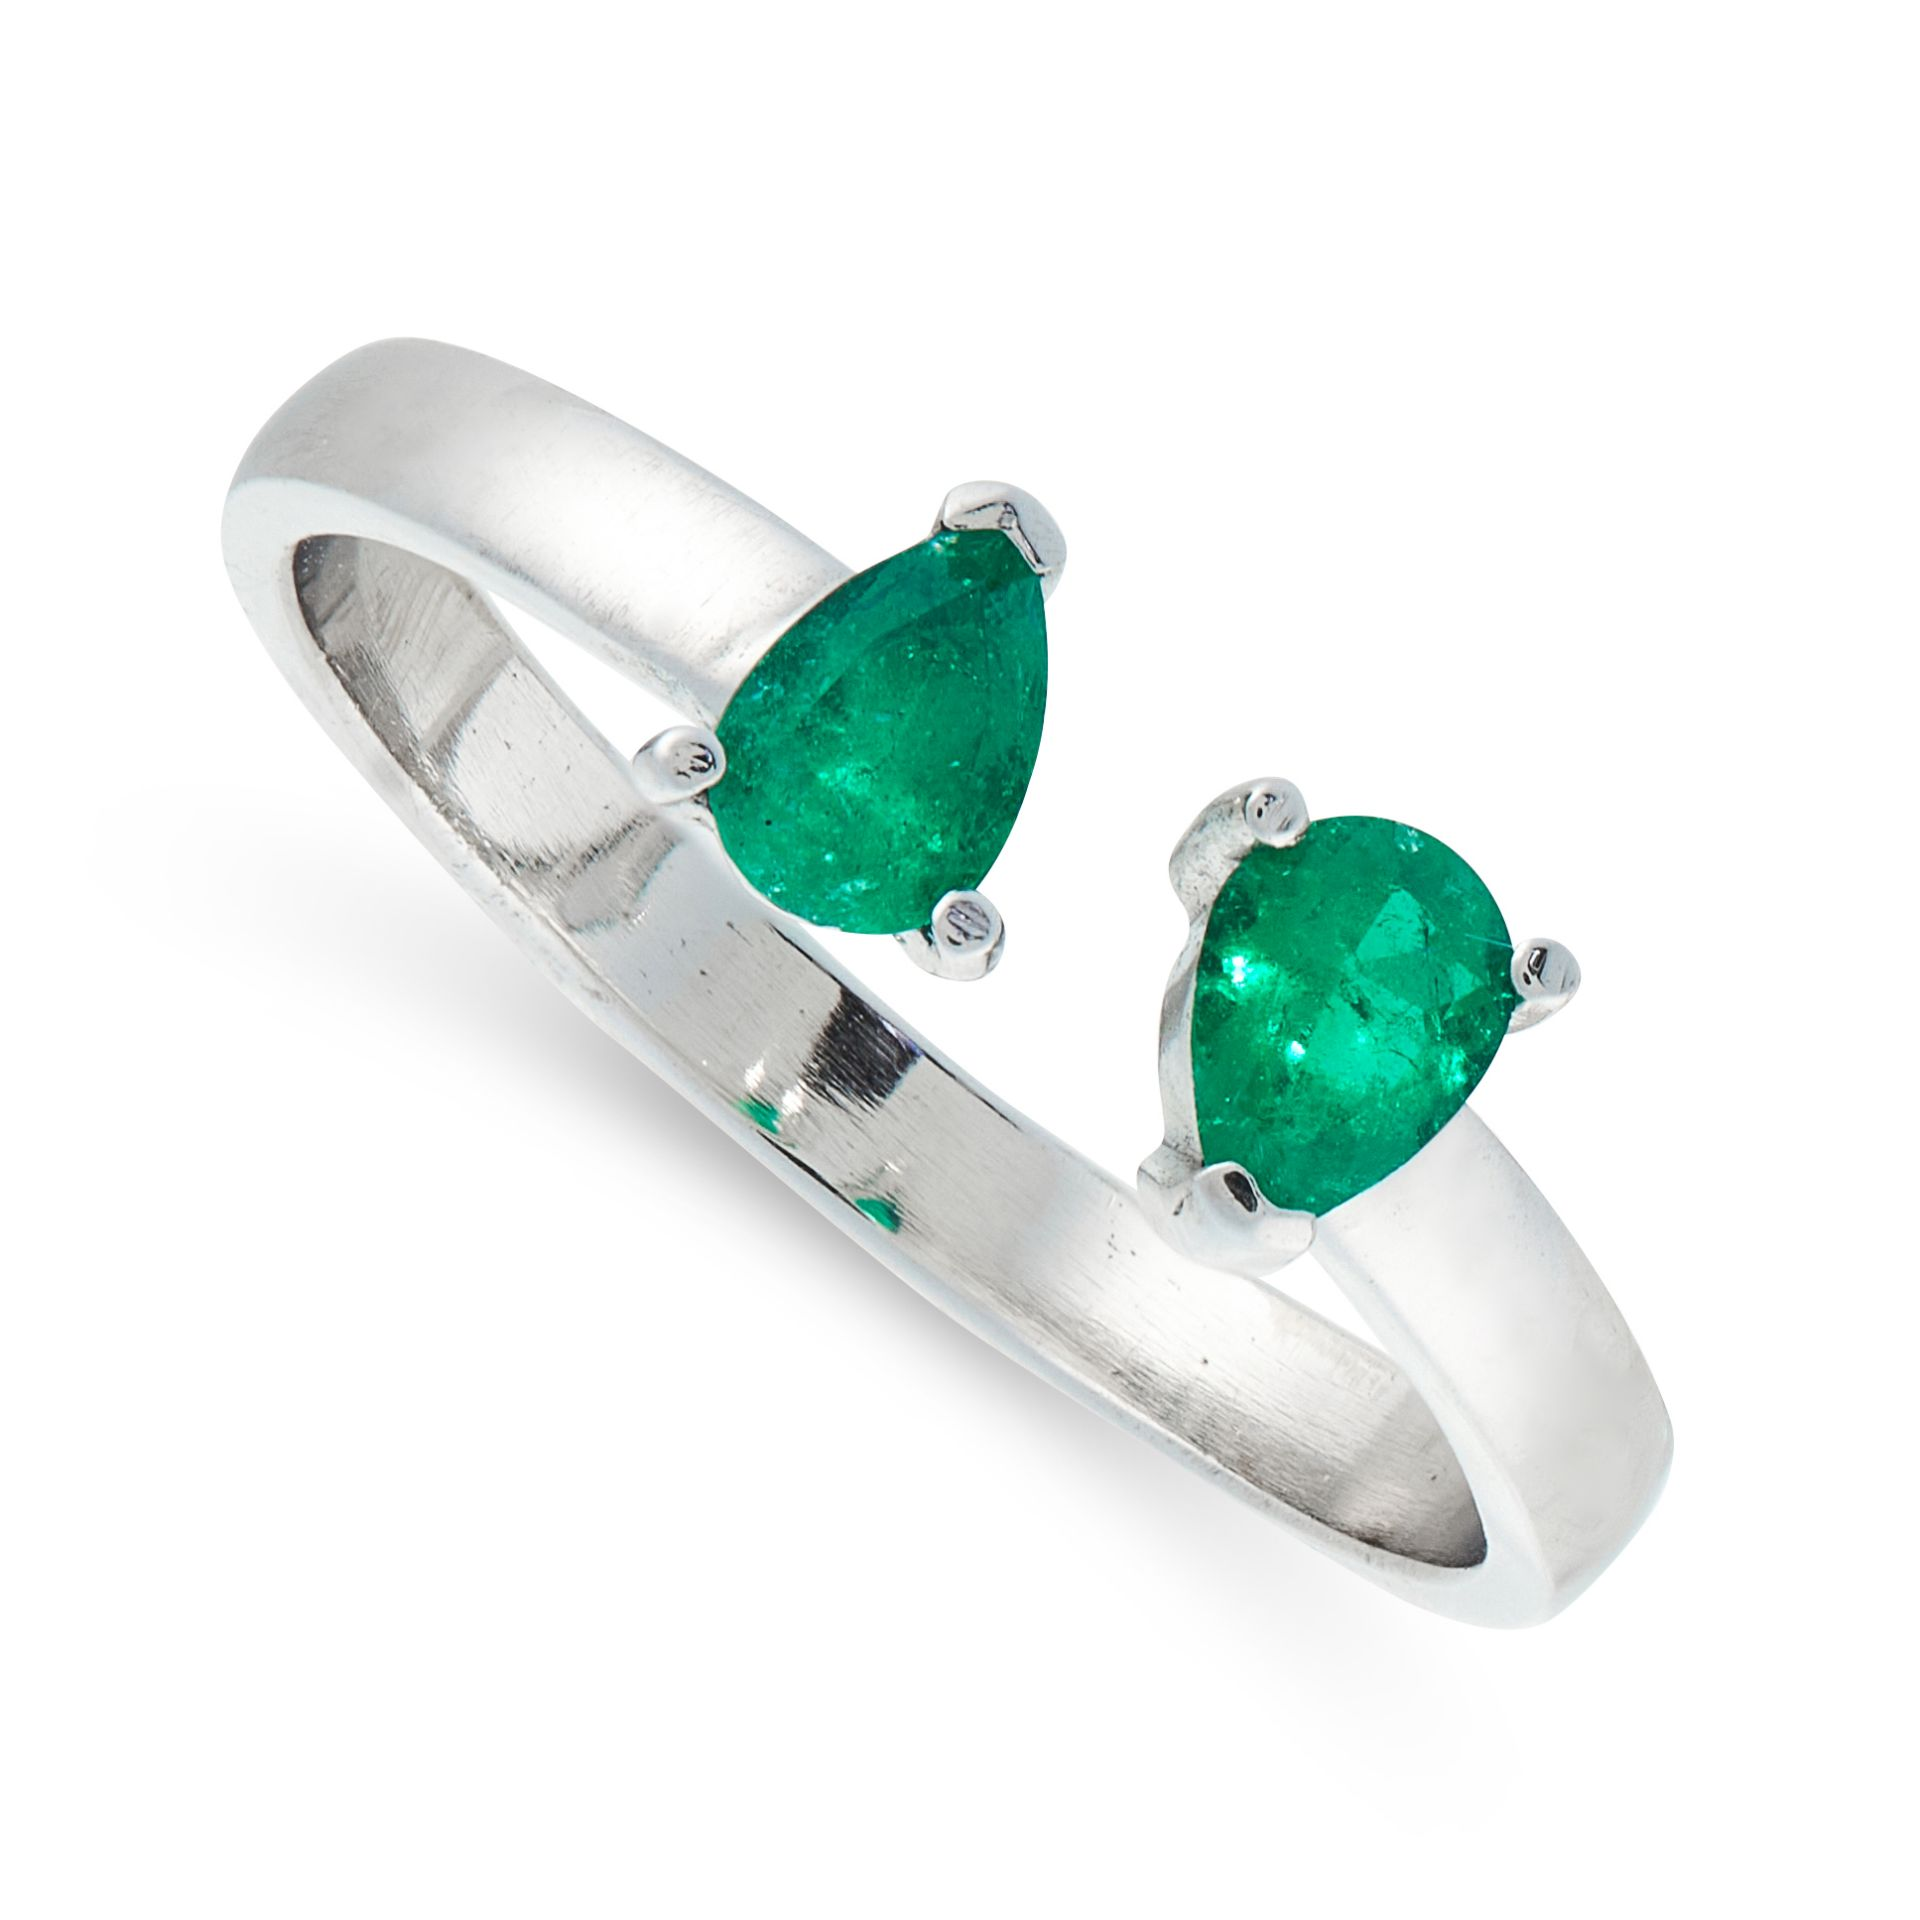 AN EMERALD DRESS RING in 18ct white gold, the open band is set with two pear cut emeralds, stamped